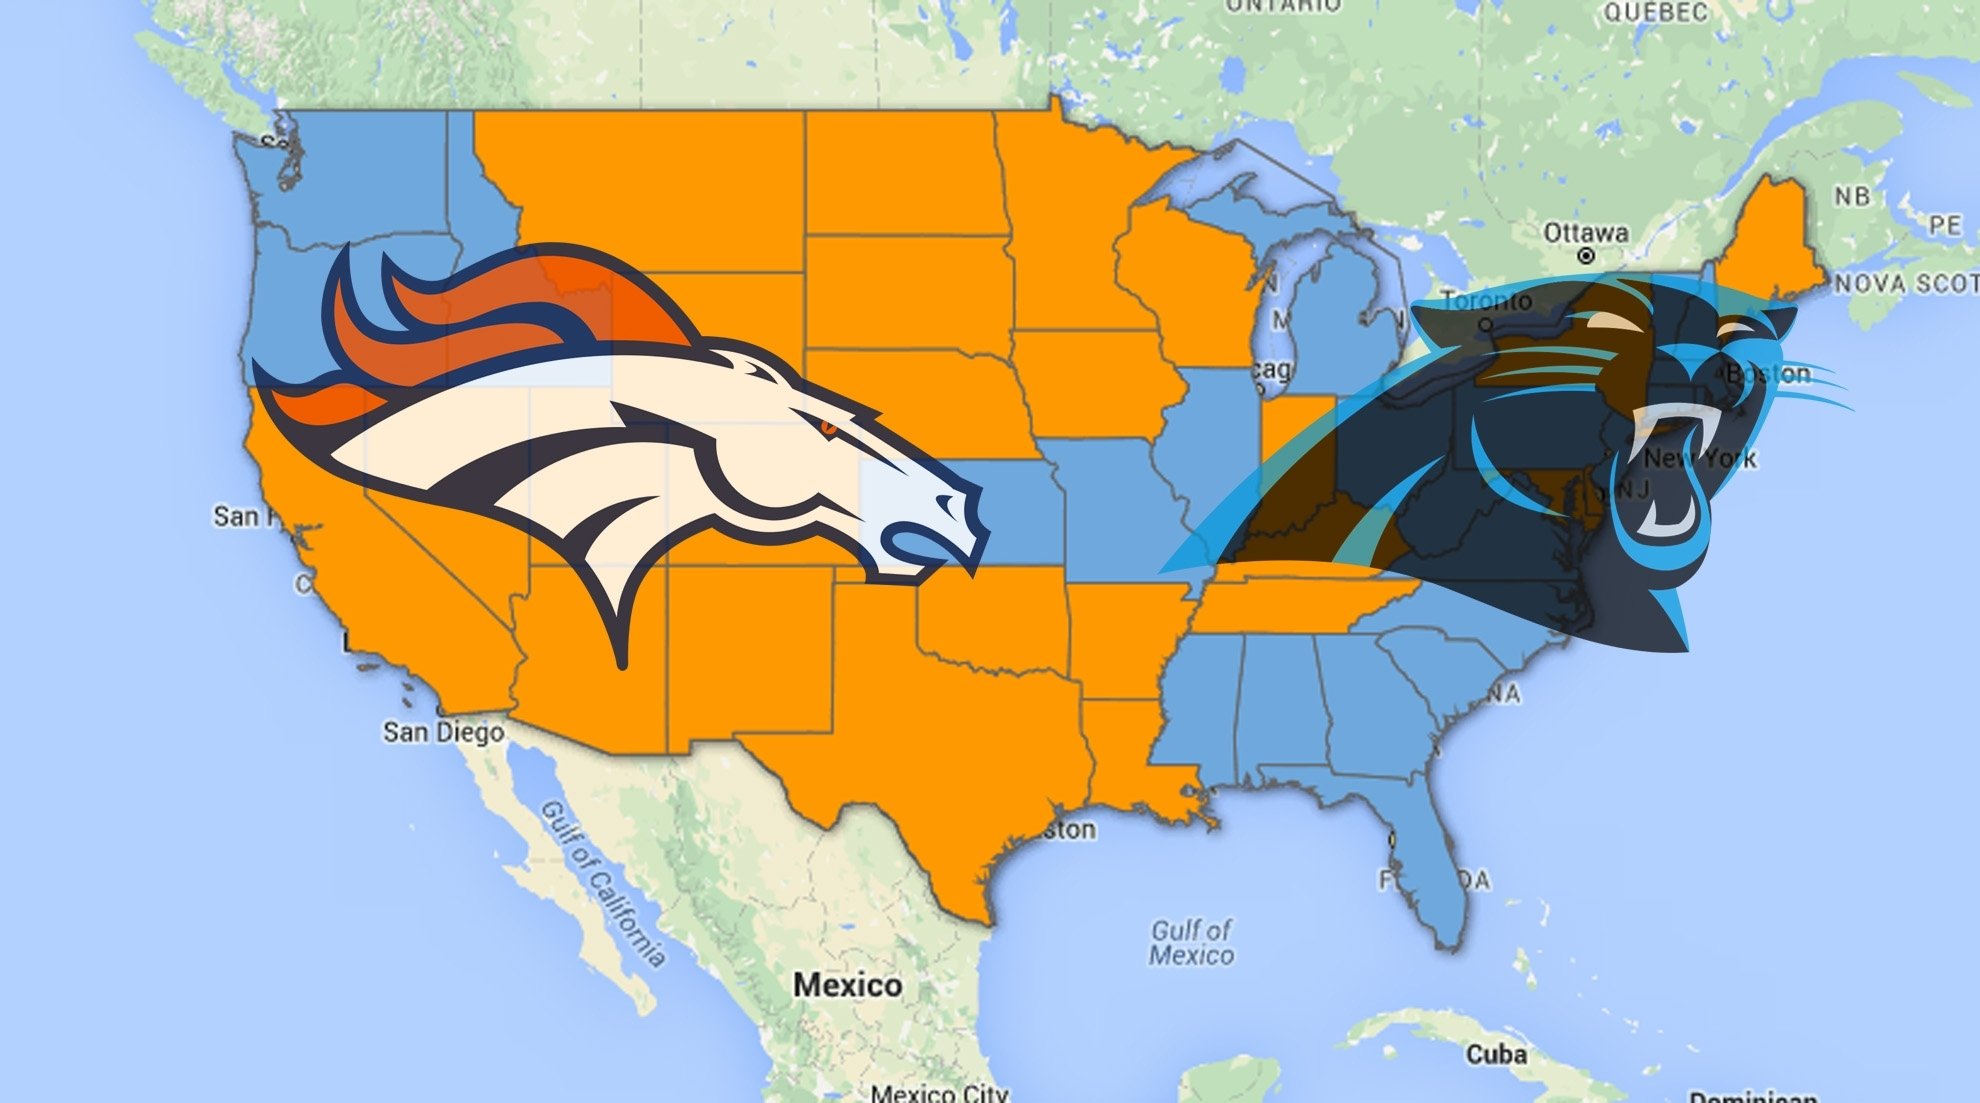 A Look At Where Super Bowl 50 Rooting Interest Lies pertaining to Nfl Super Bowl Map